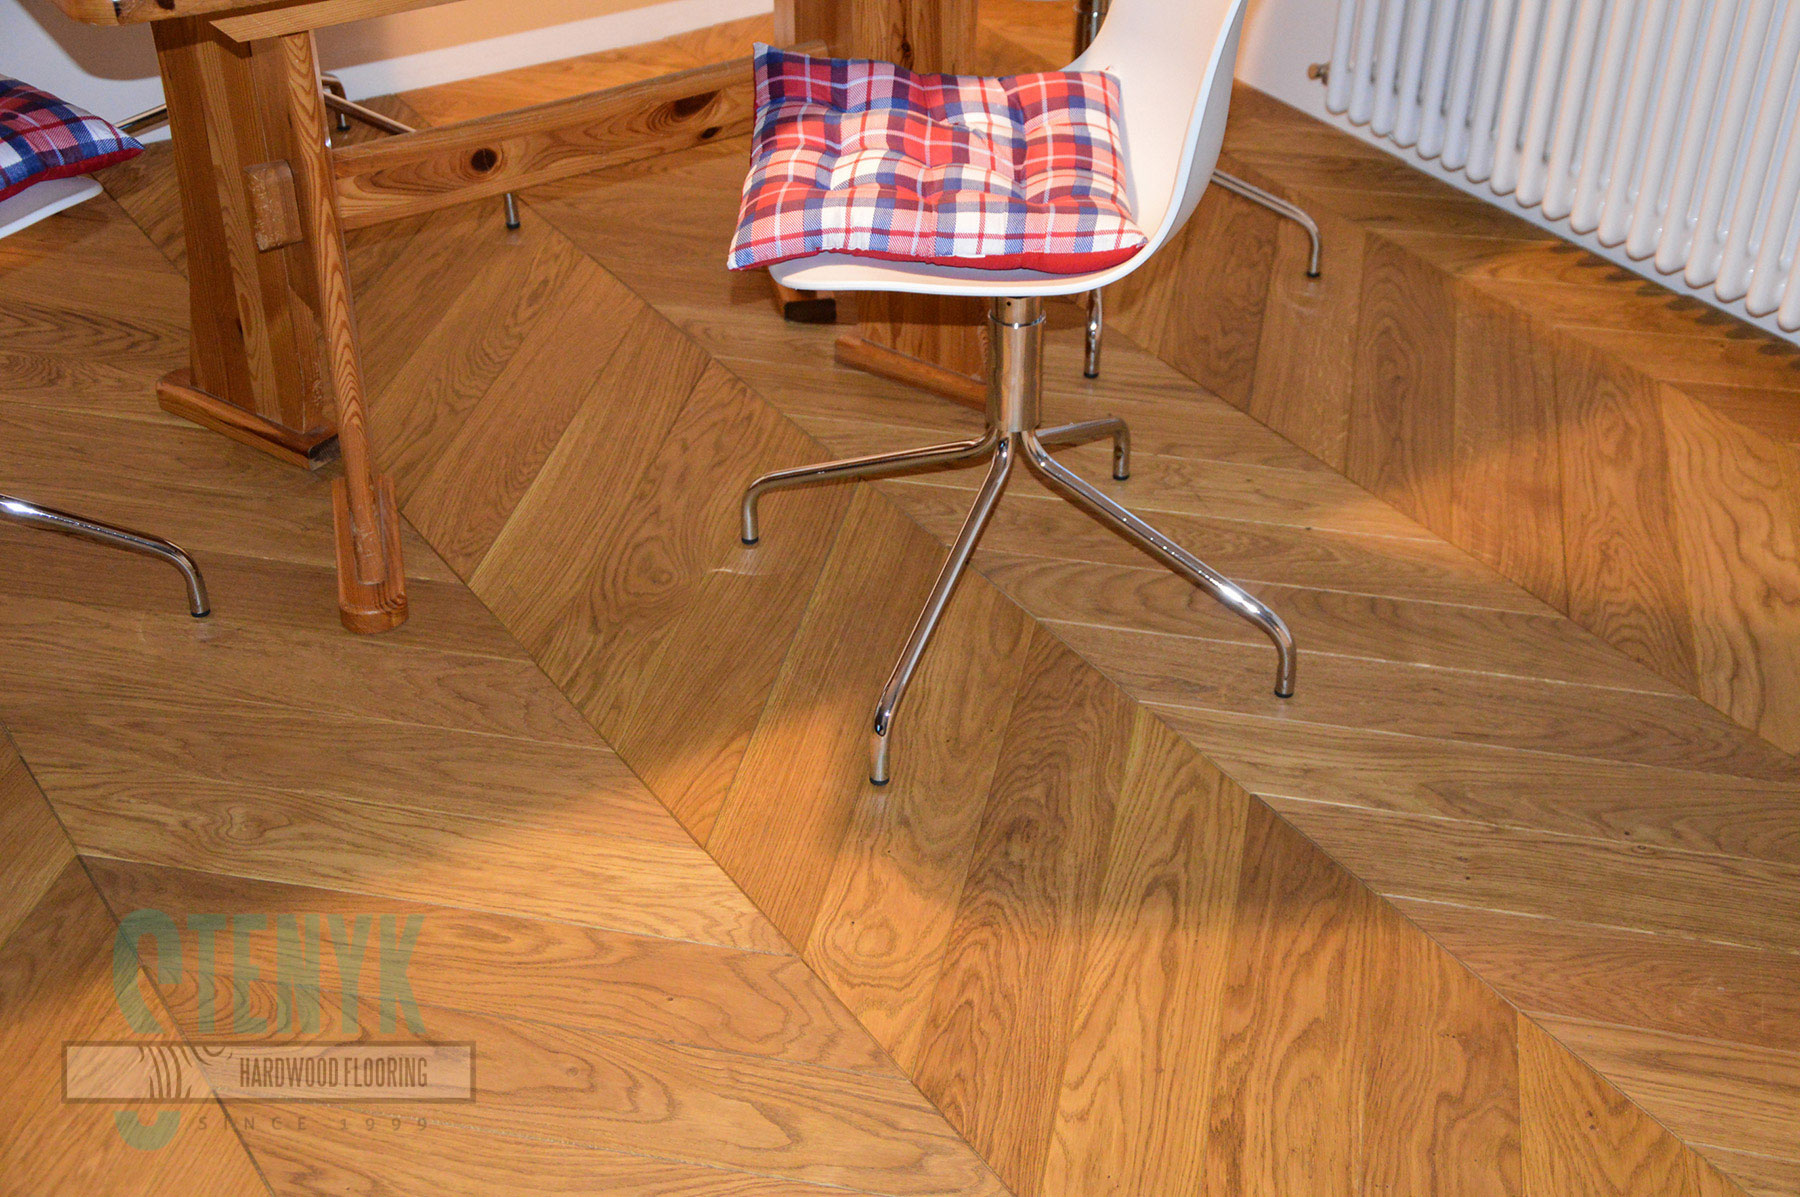 120mm Chevron flooring, Select grade, Pure color in the apartment